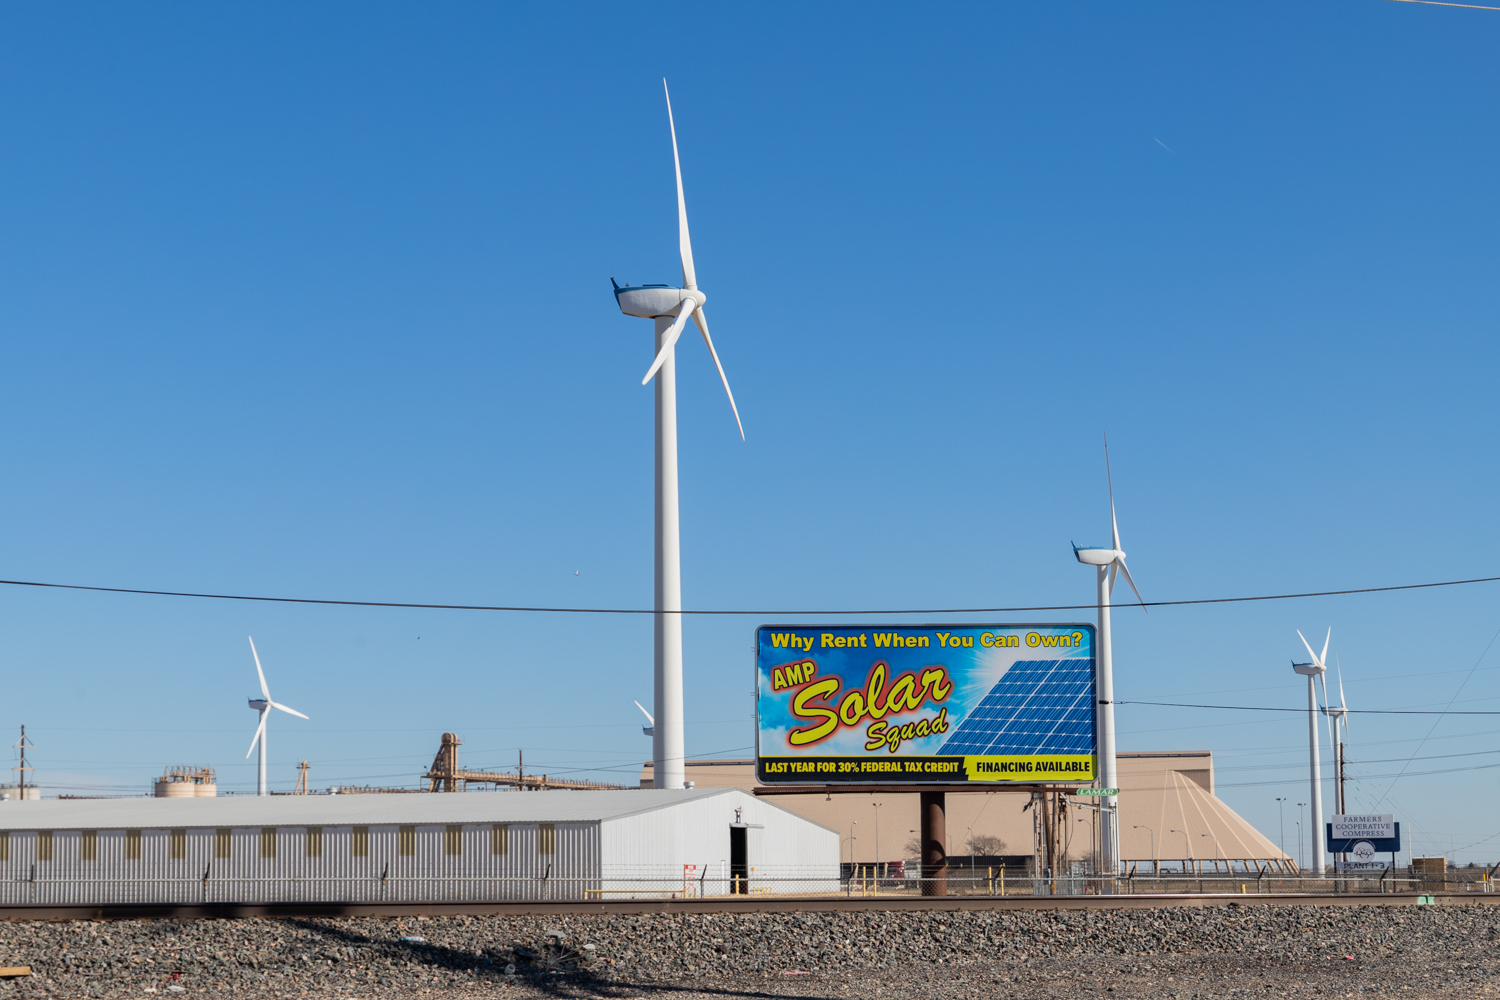 Wind turbines located at the local Cotton Cooperative in Lubbock, Texas spin behind a billboard promoting solar energy. (Codi Clark/Texas Tech University)